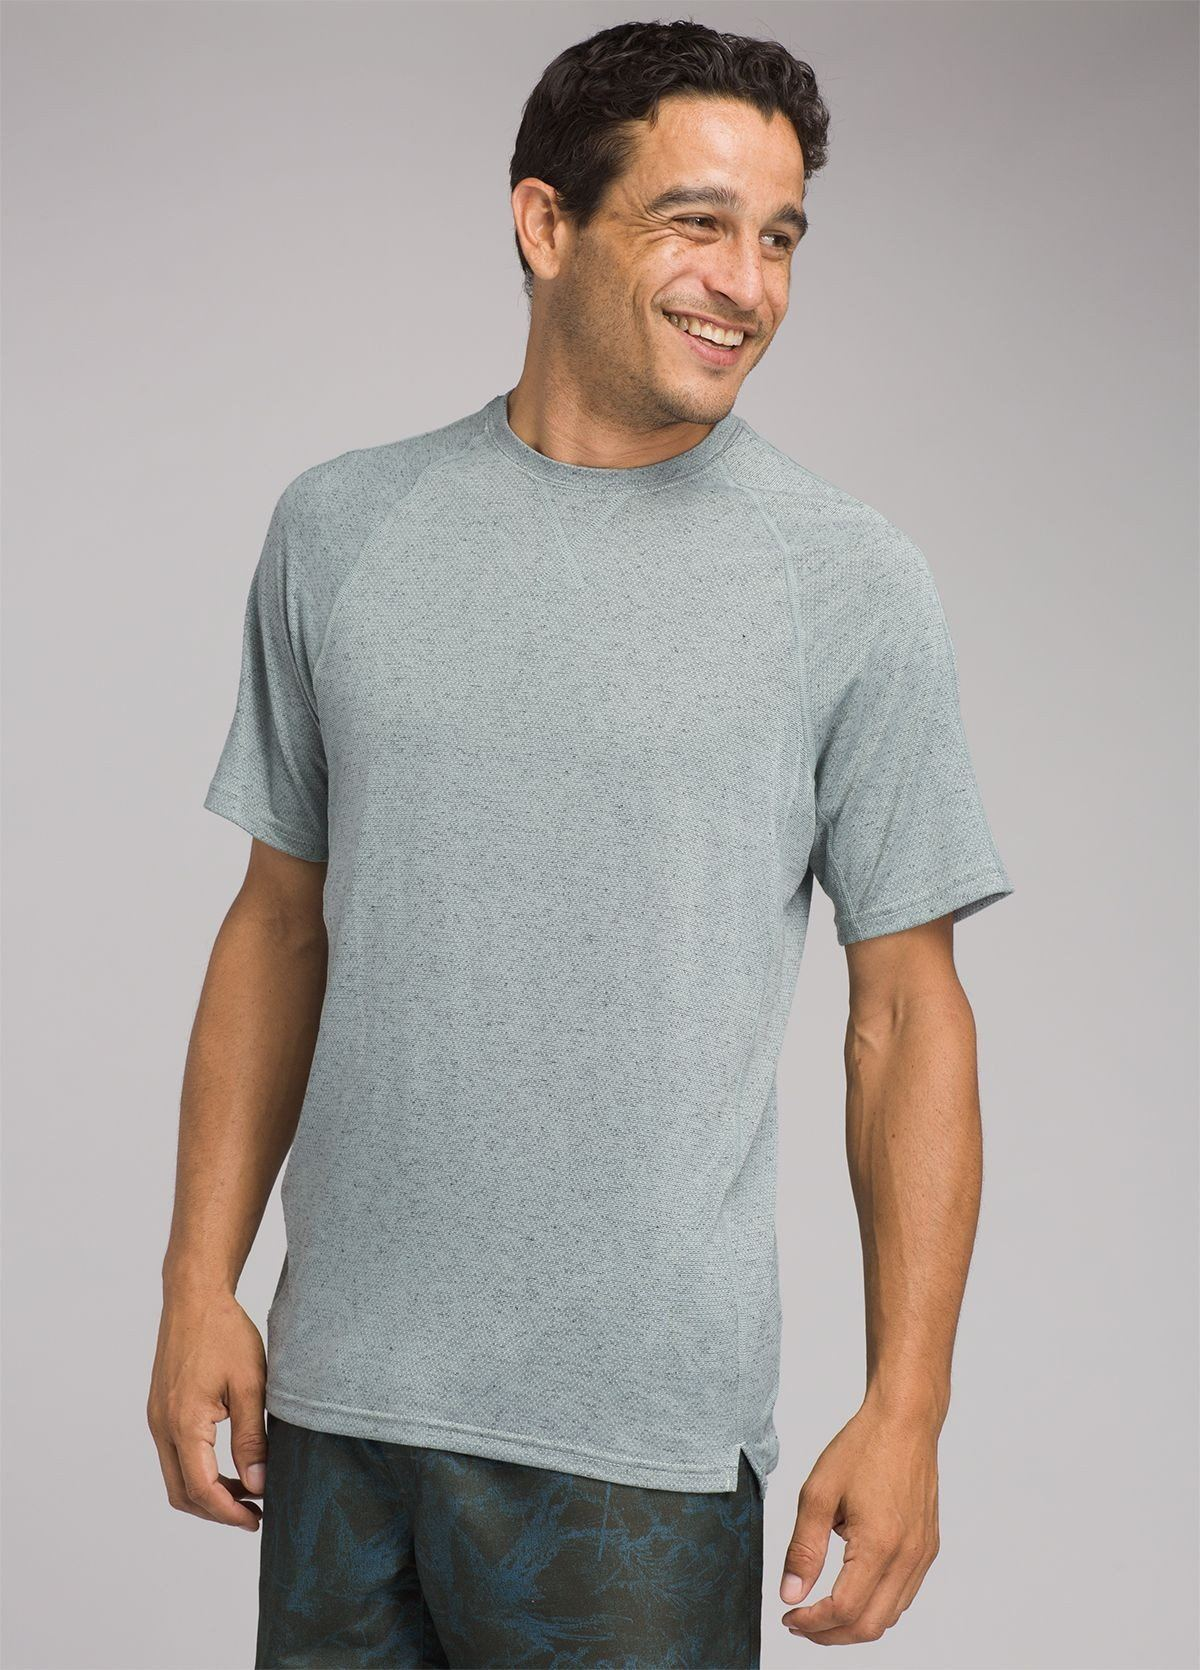 PrAna - Transverse Short Sleeve Sport T-shirt - Recycled Material - Weekendbee - sustainable sportswear